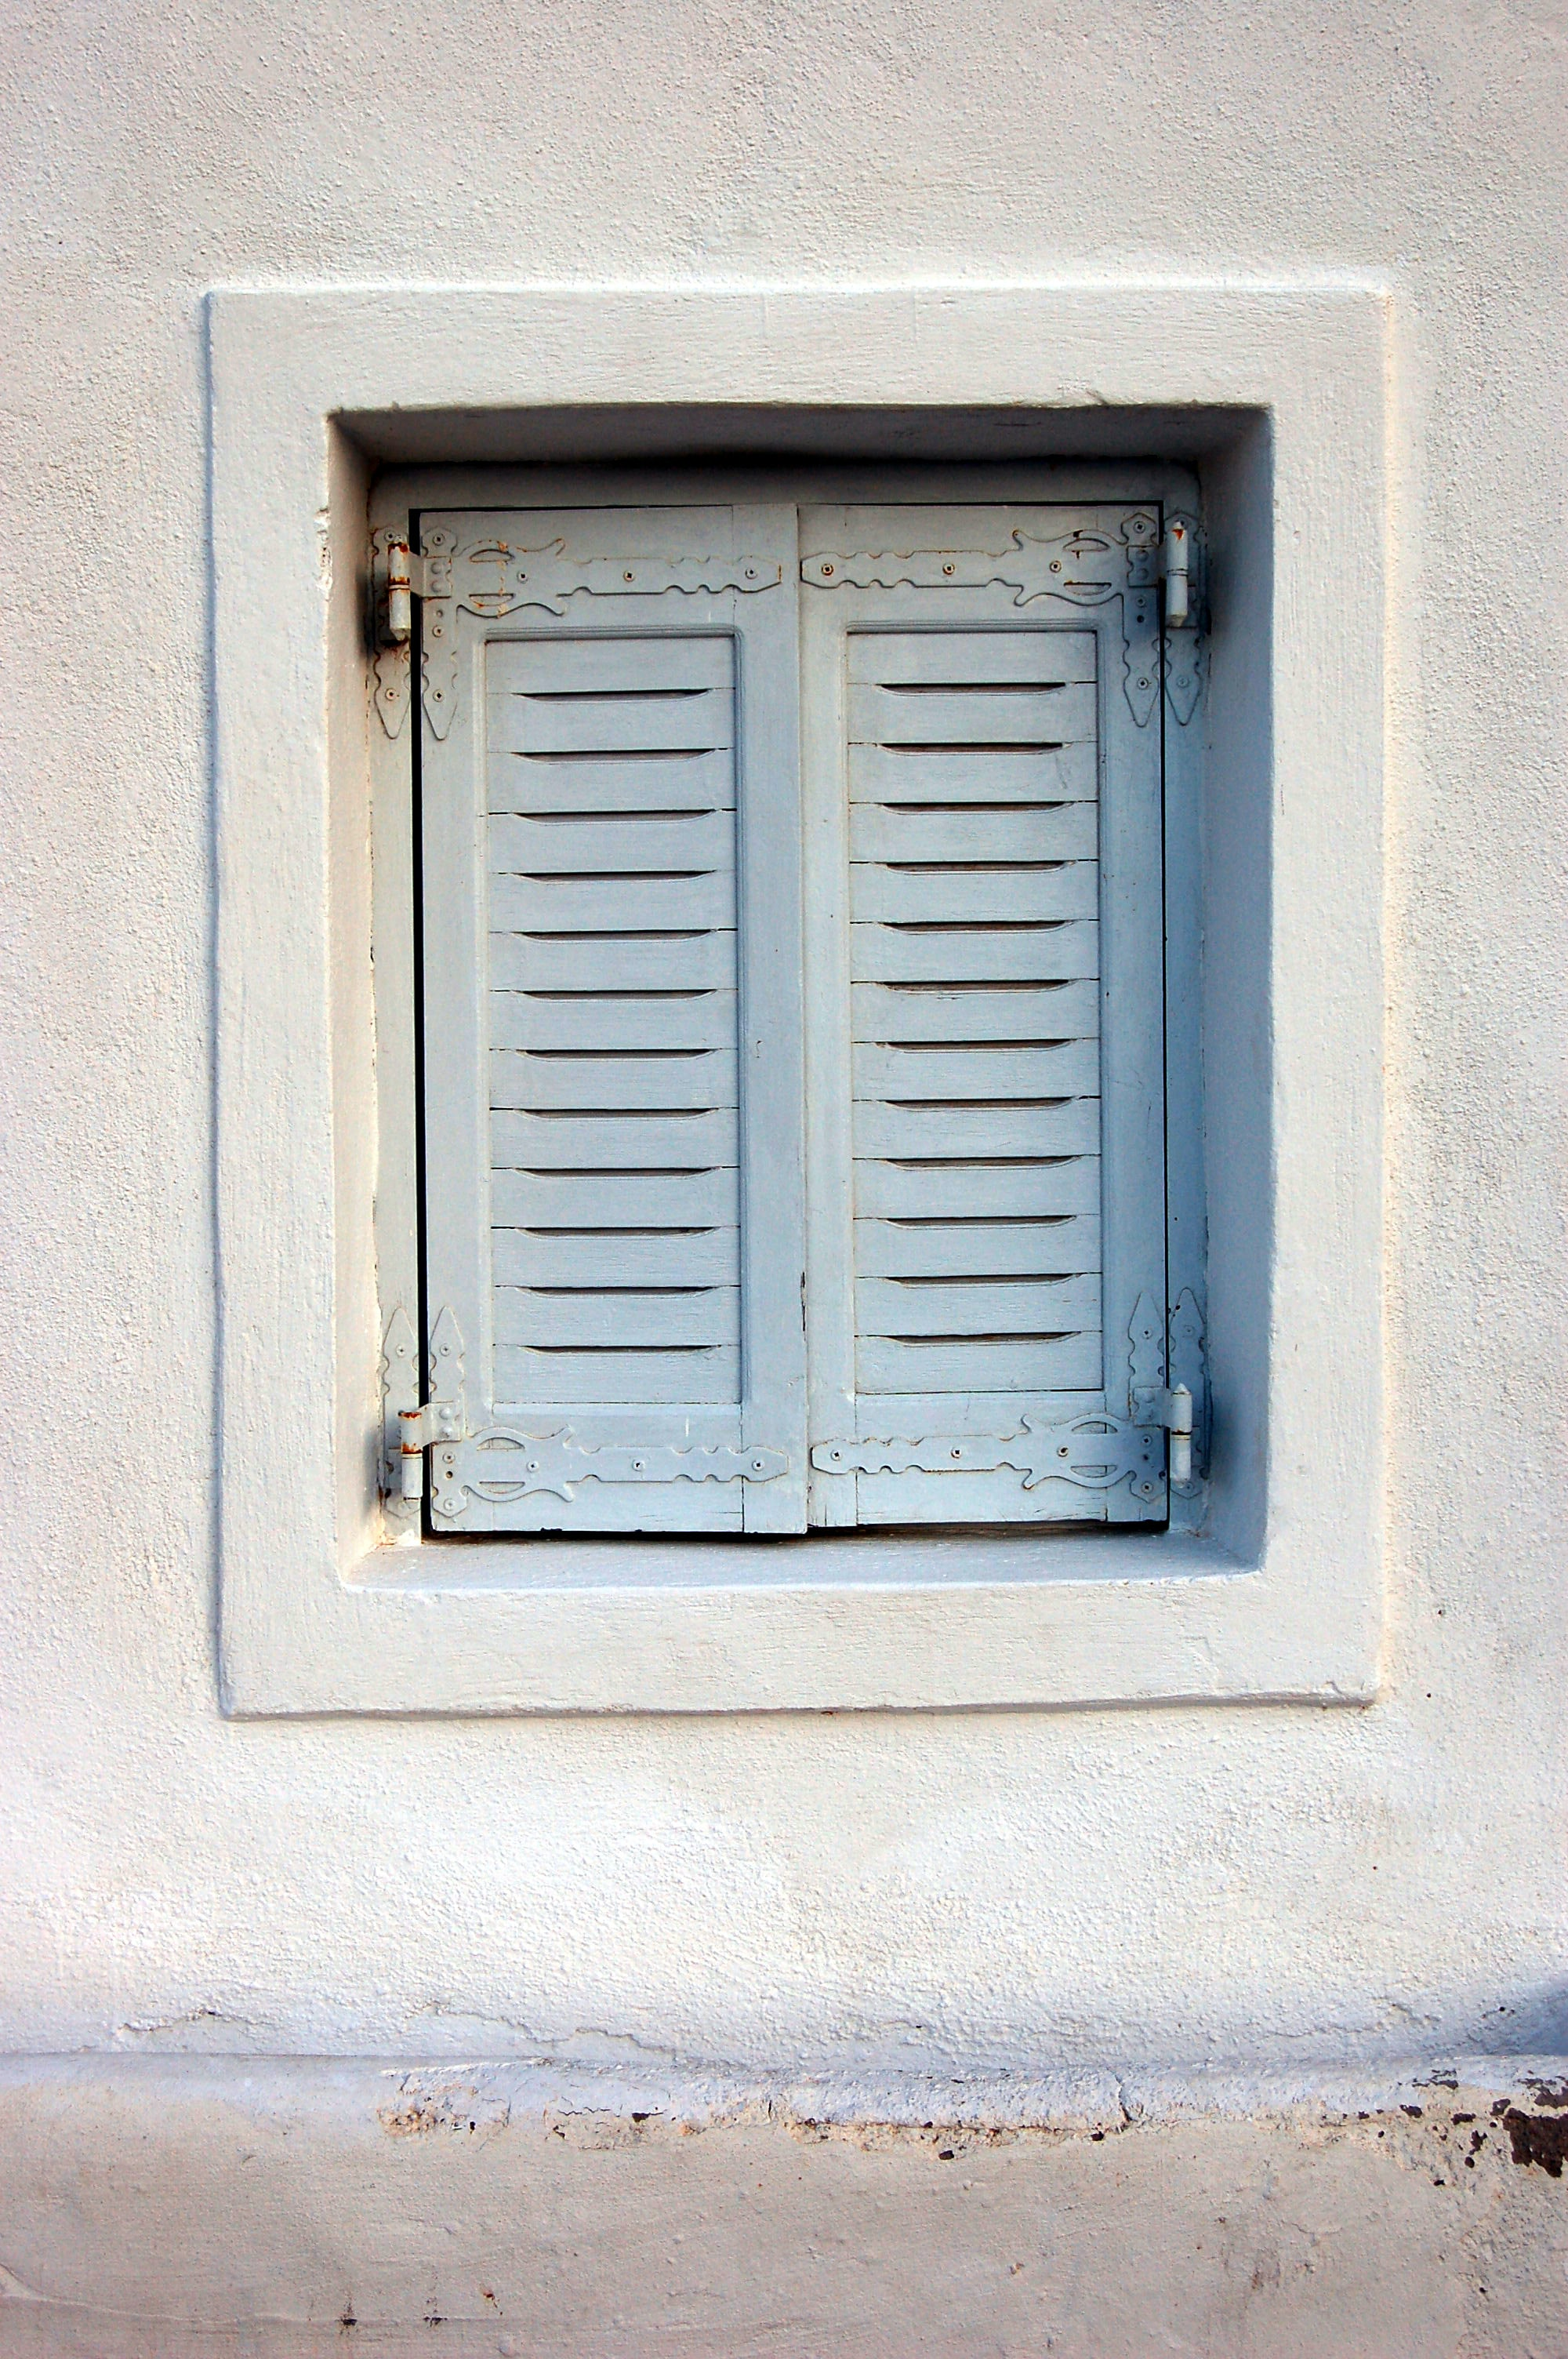 gray wooden 2-door window closed